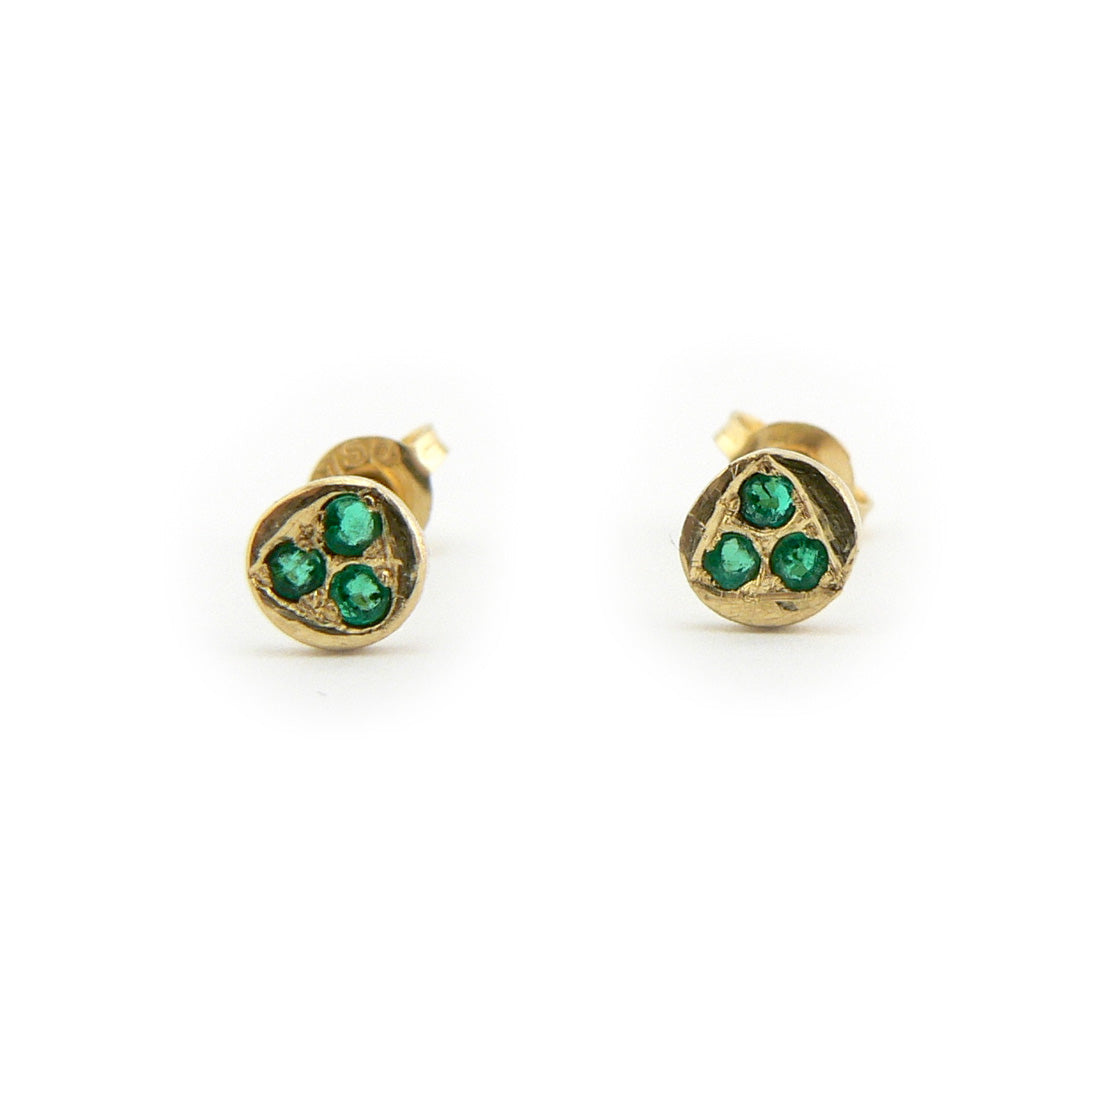 tsavorite garnet stud earrings in 19ct yellow gold, bespoke custom handmade